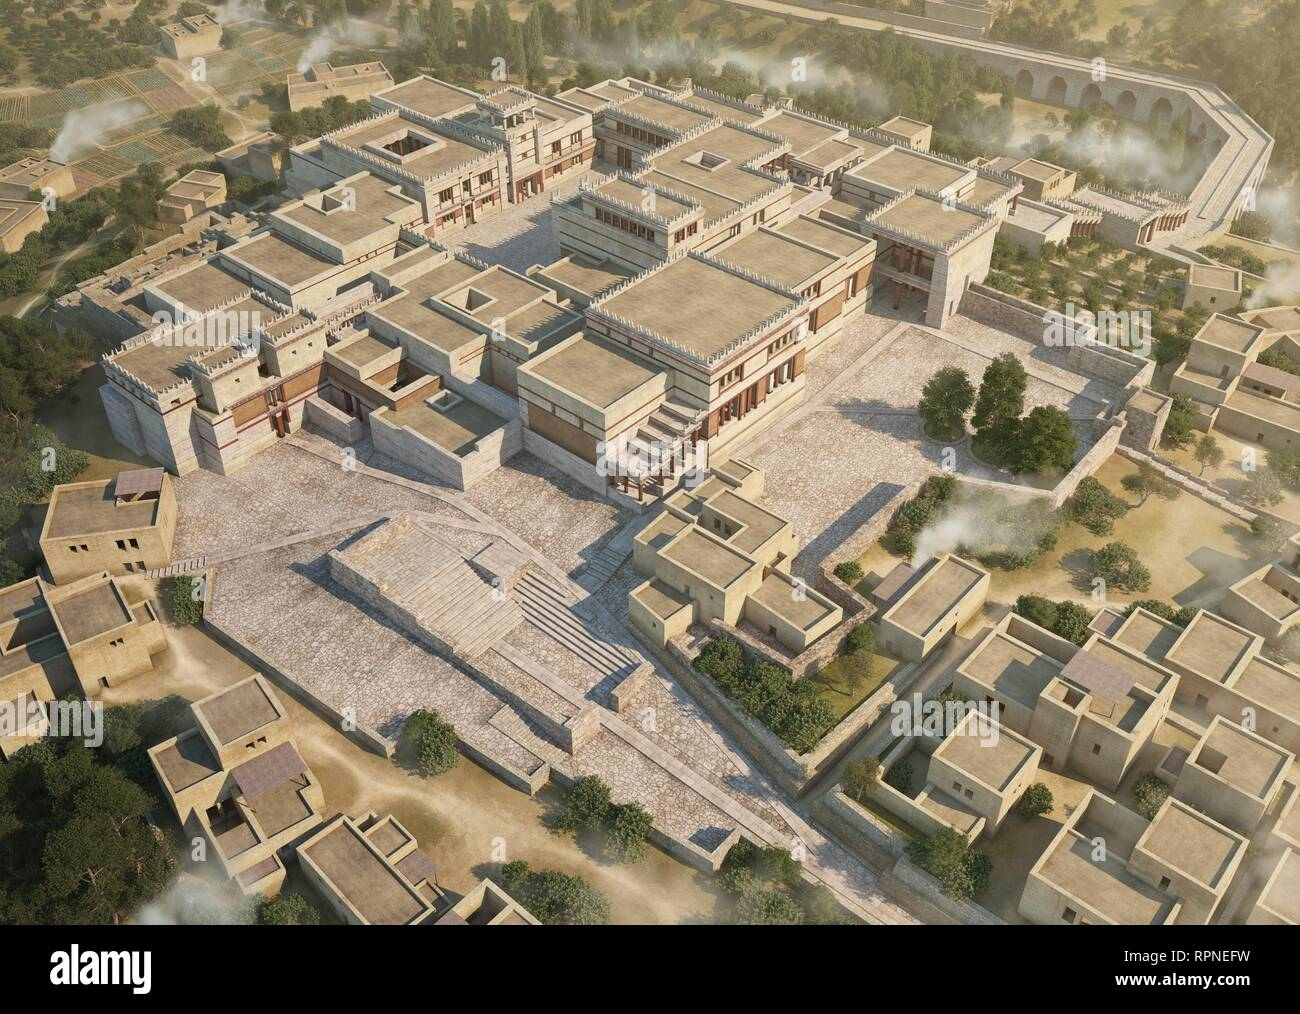 Palace of Knossos towards 1350 BCE. Ideal reconstruction of the palace in its final phase and maximum splendor in a conjectural proposal of the upper floors as it is known in depth the structure in the lower floors despite the superposition of structures that made it associated with the famous labyrinth of the minotaur. - Stock Image